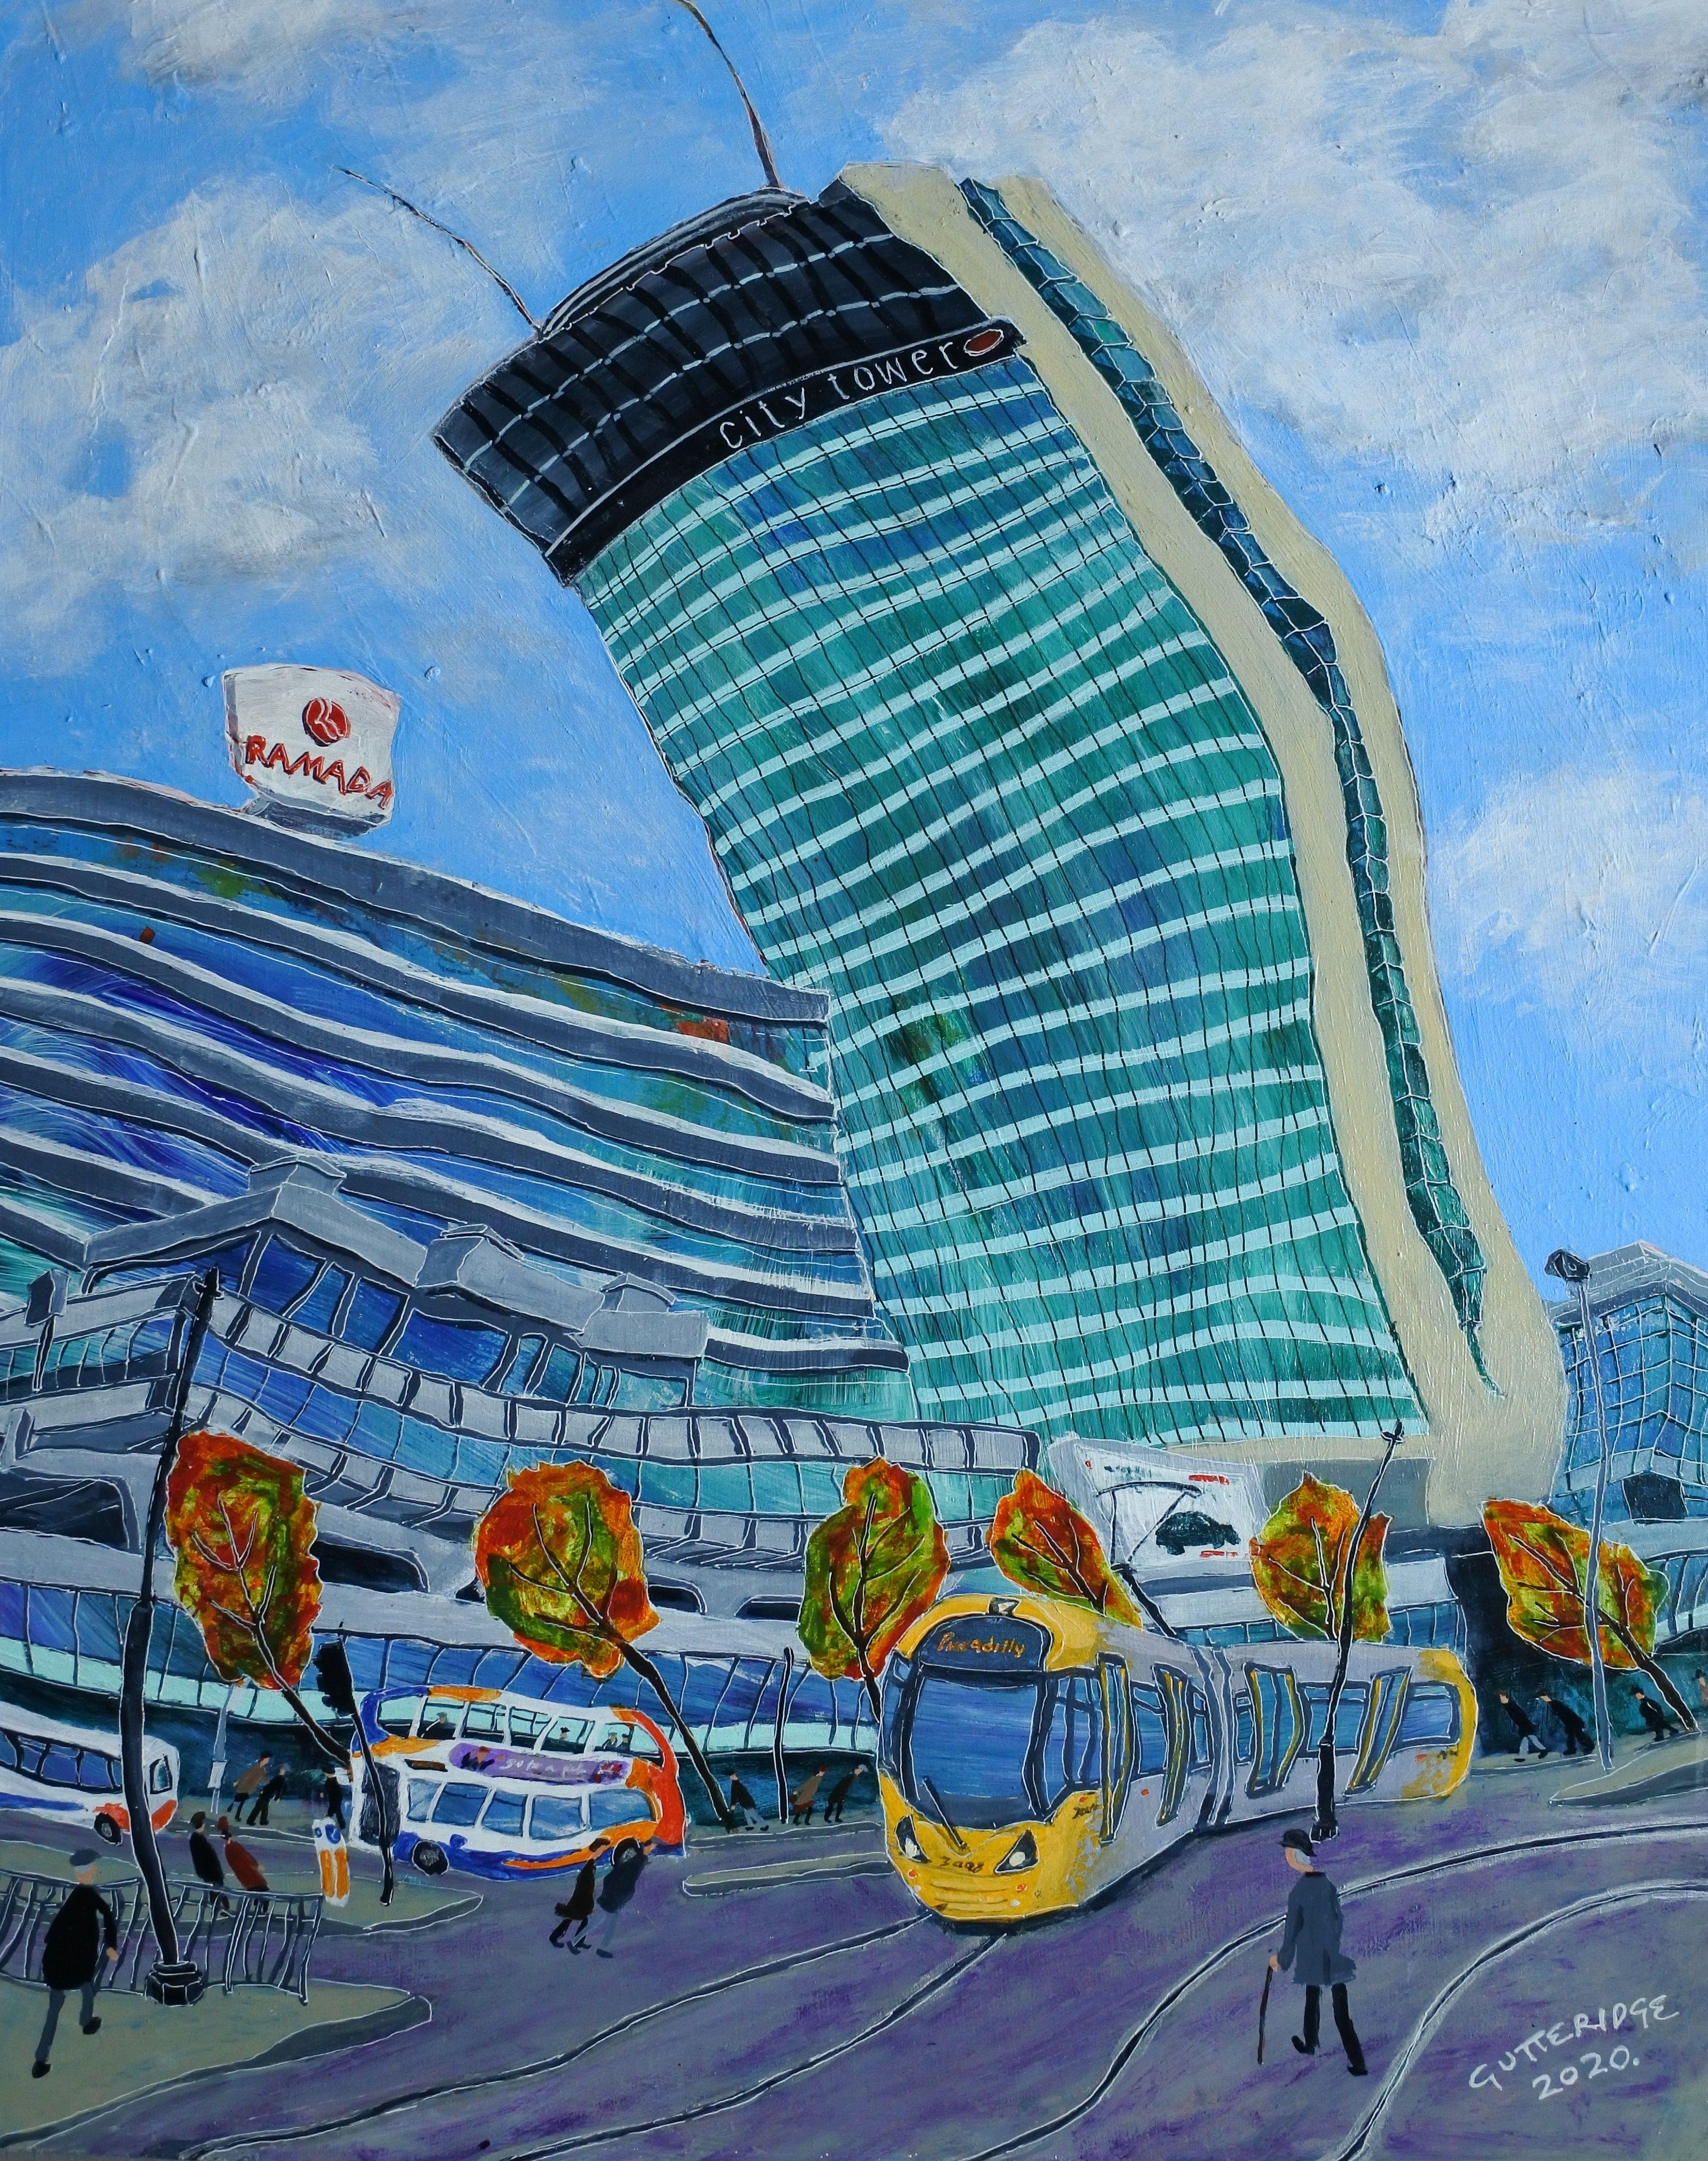 City Tower, Manchester, with Lowry Figures, Painting, Acrylic on Wood Panel